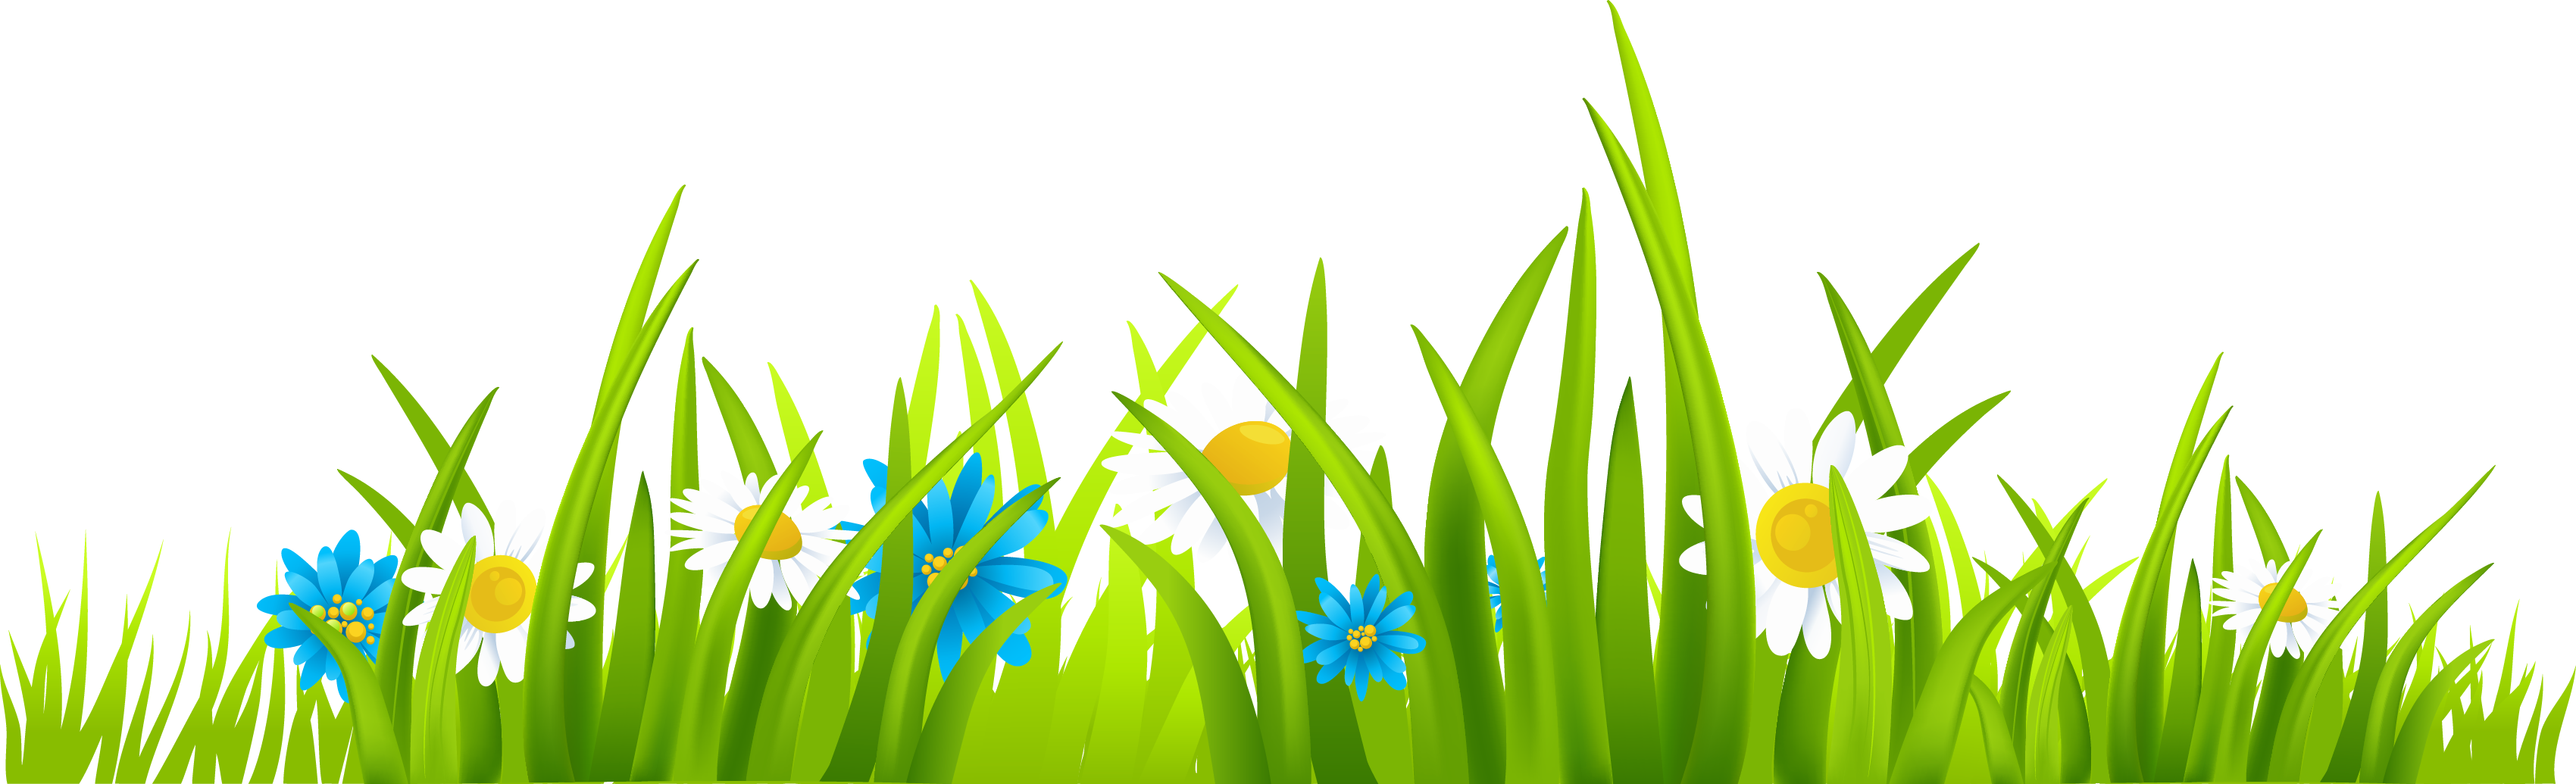 Grass clip art free free clipart images 3